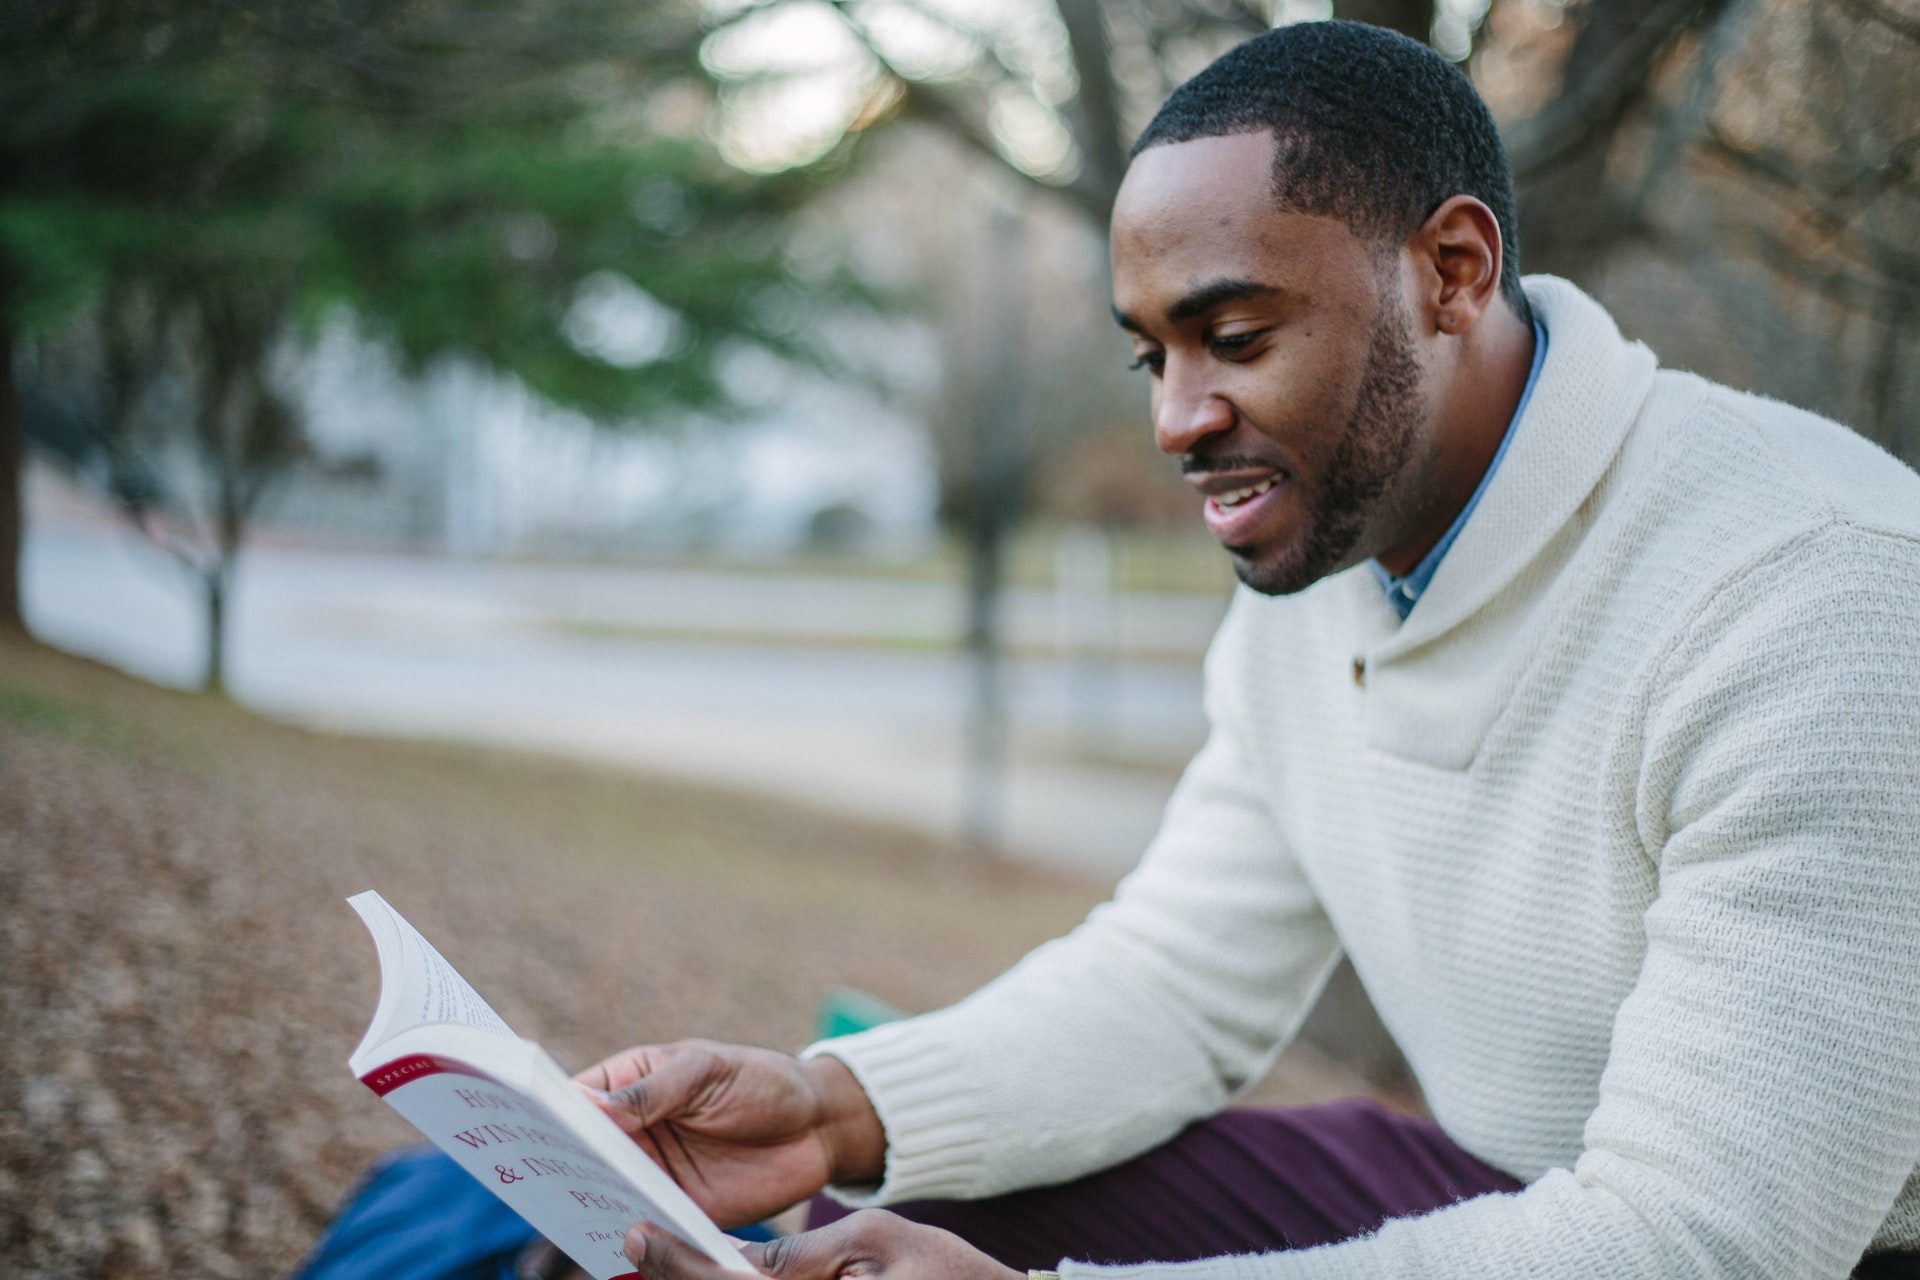 A man wearing a white sweater reads a book in the park.